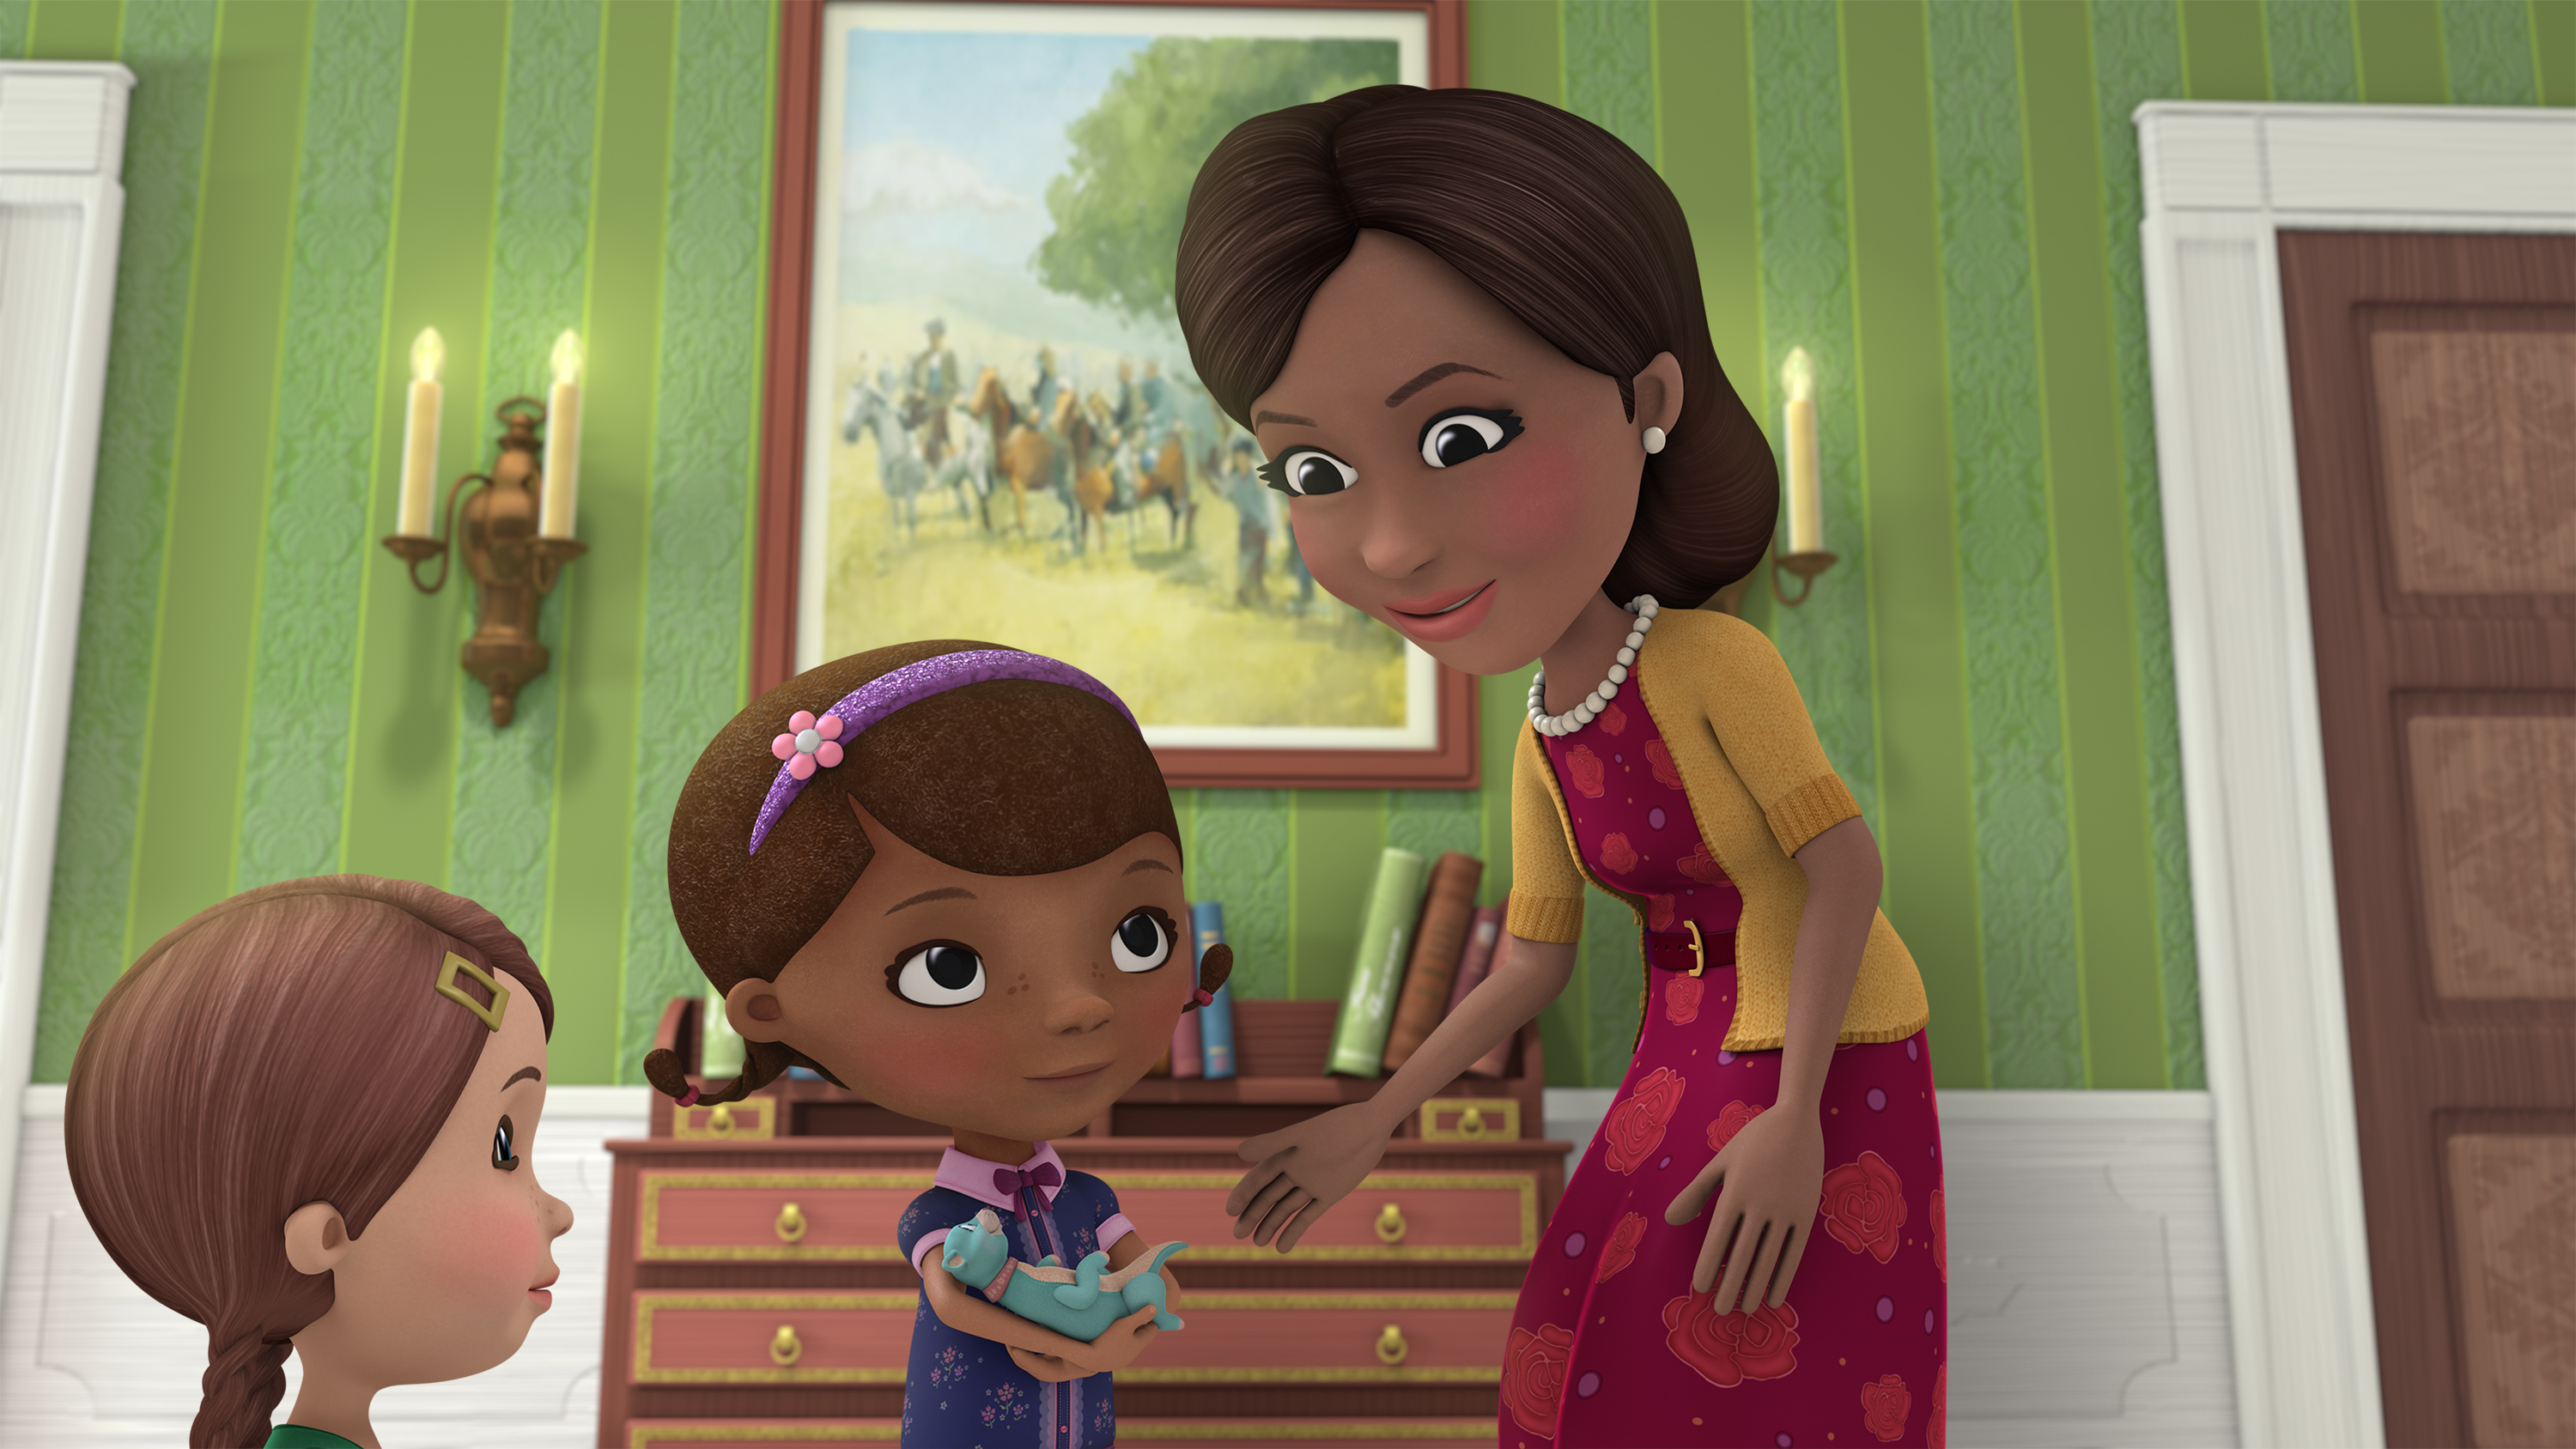 First Lady Doc Mcstuffins Michelle Obama To Appear On Show Time